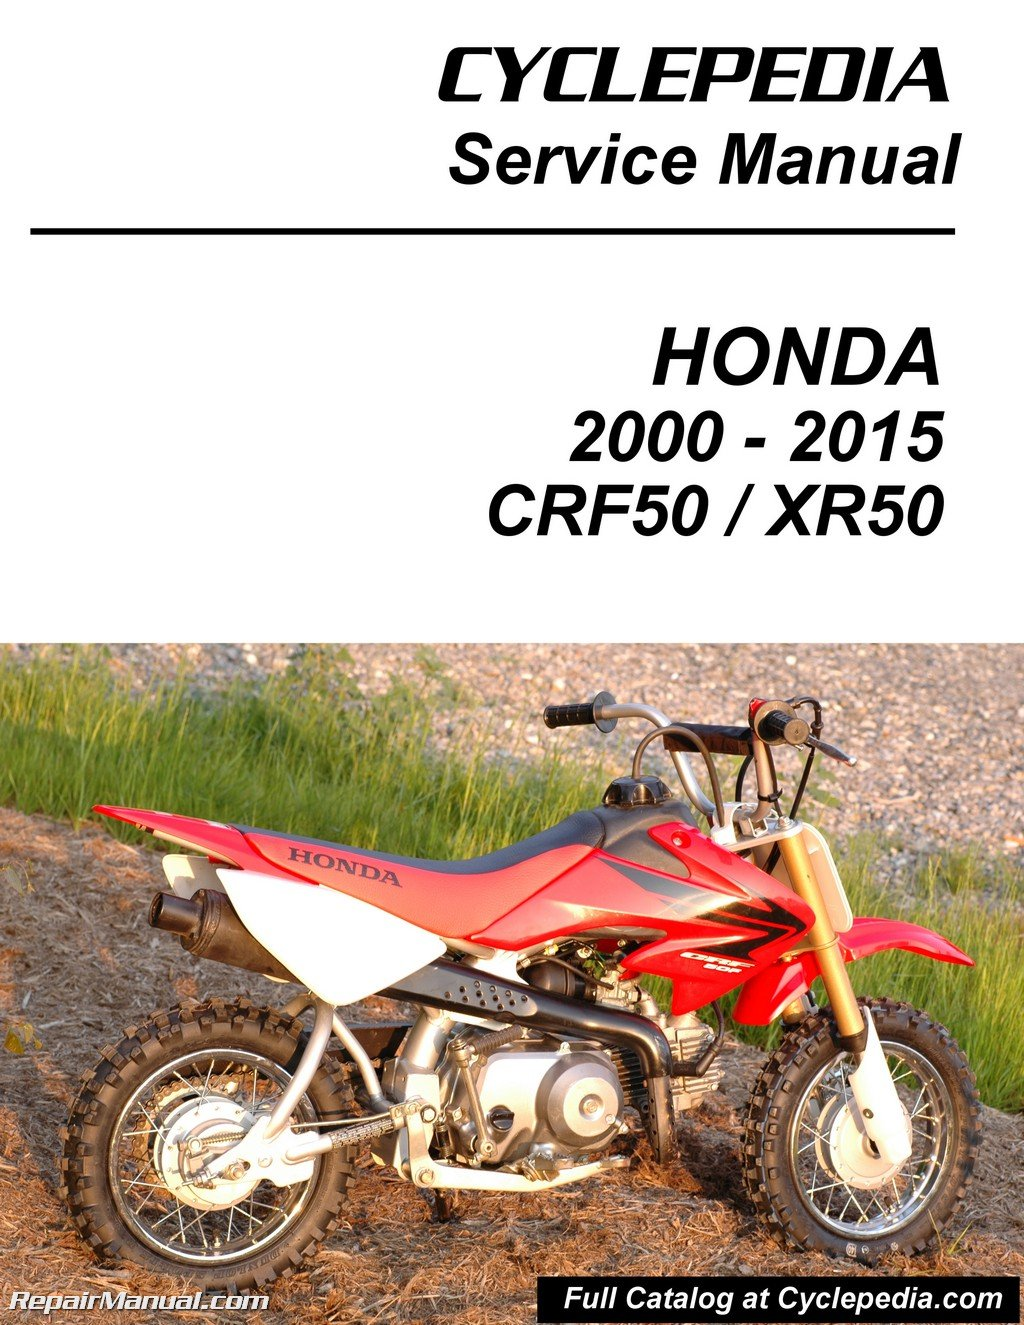 CPP-120-P-Color Honda XR50 CRF50 Motorcycle Cyclepedia Printed Color -  Service Manual: Manufacturer: Amazon.com: Books